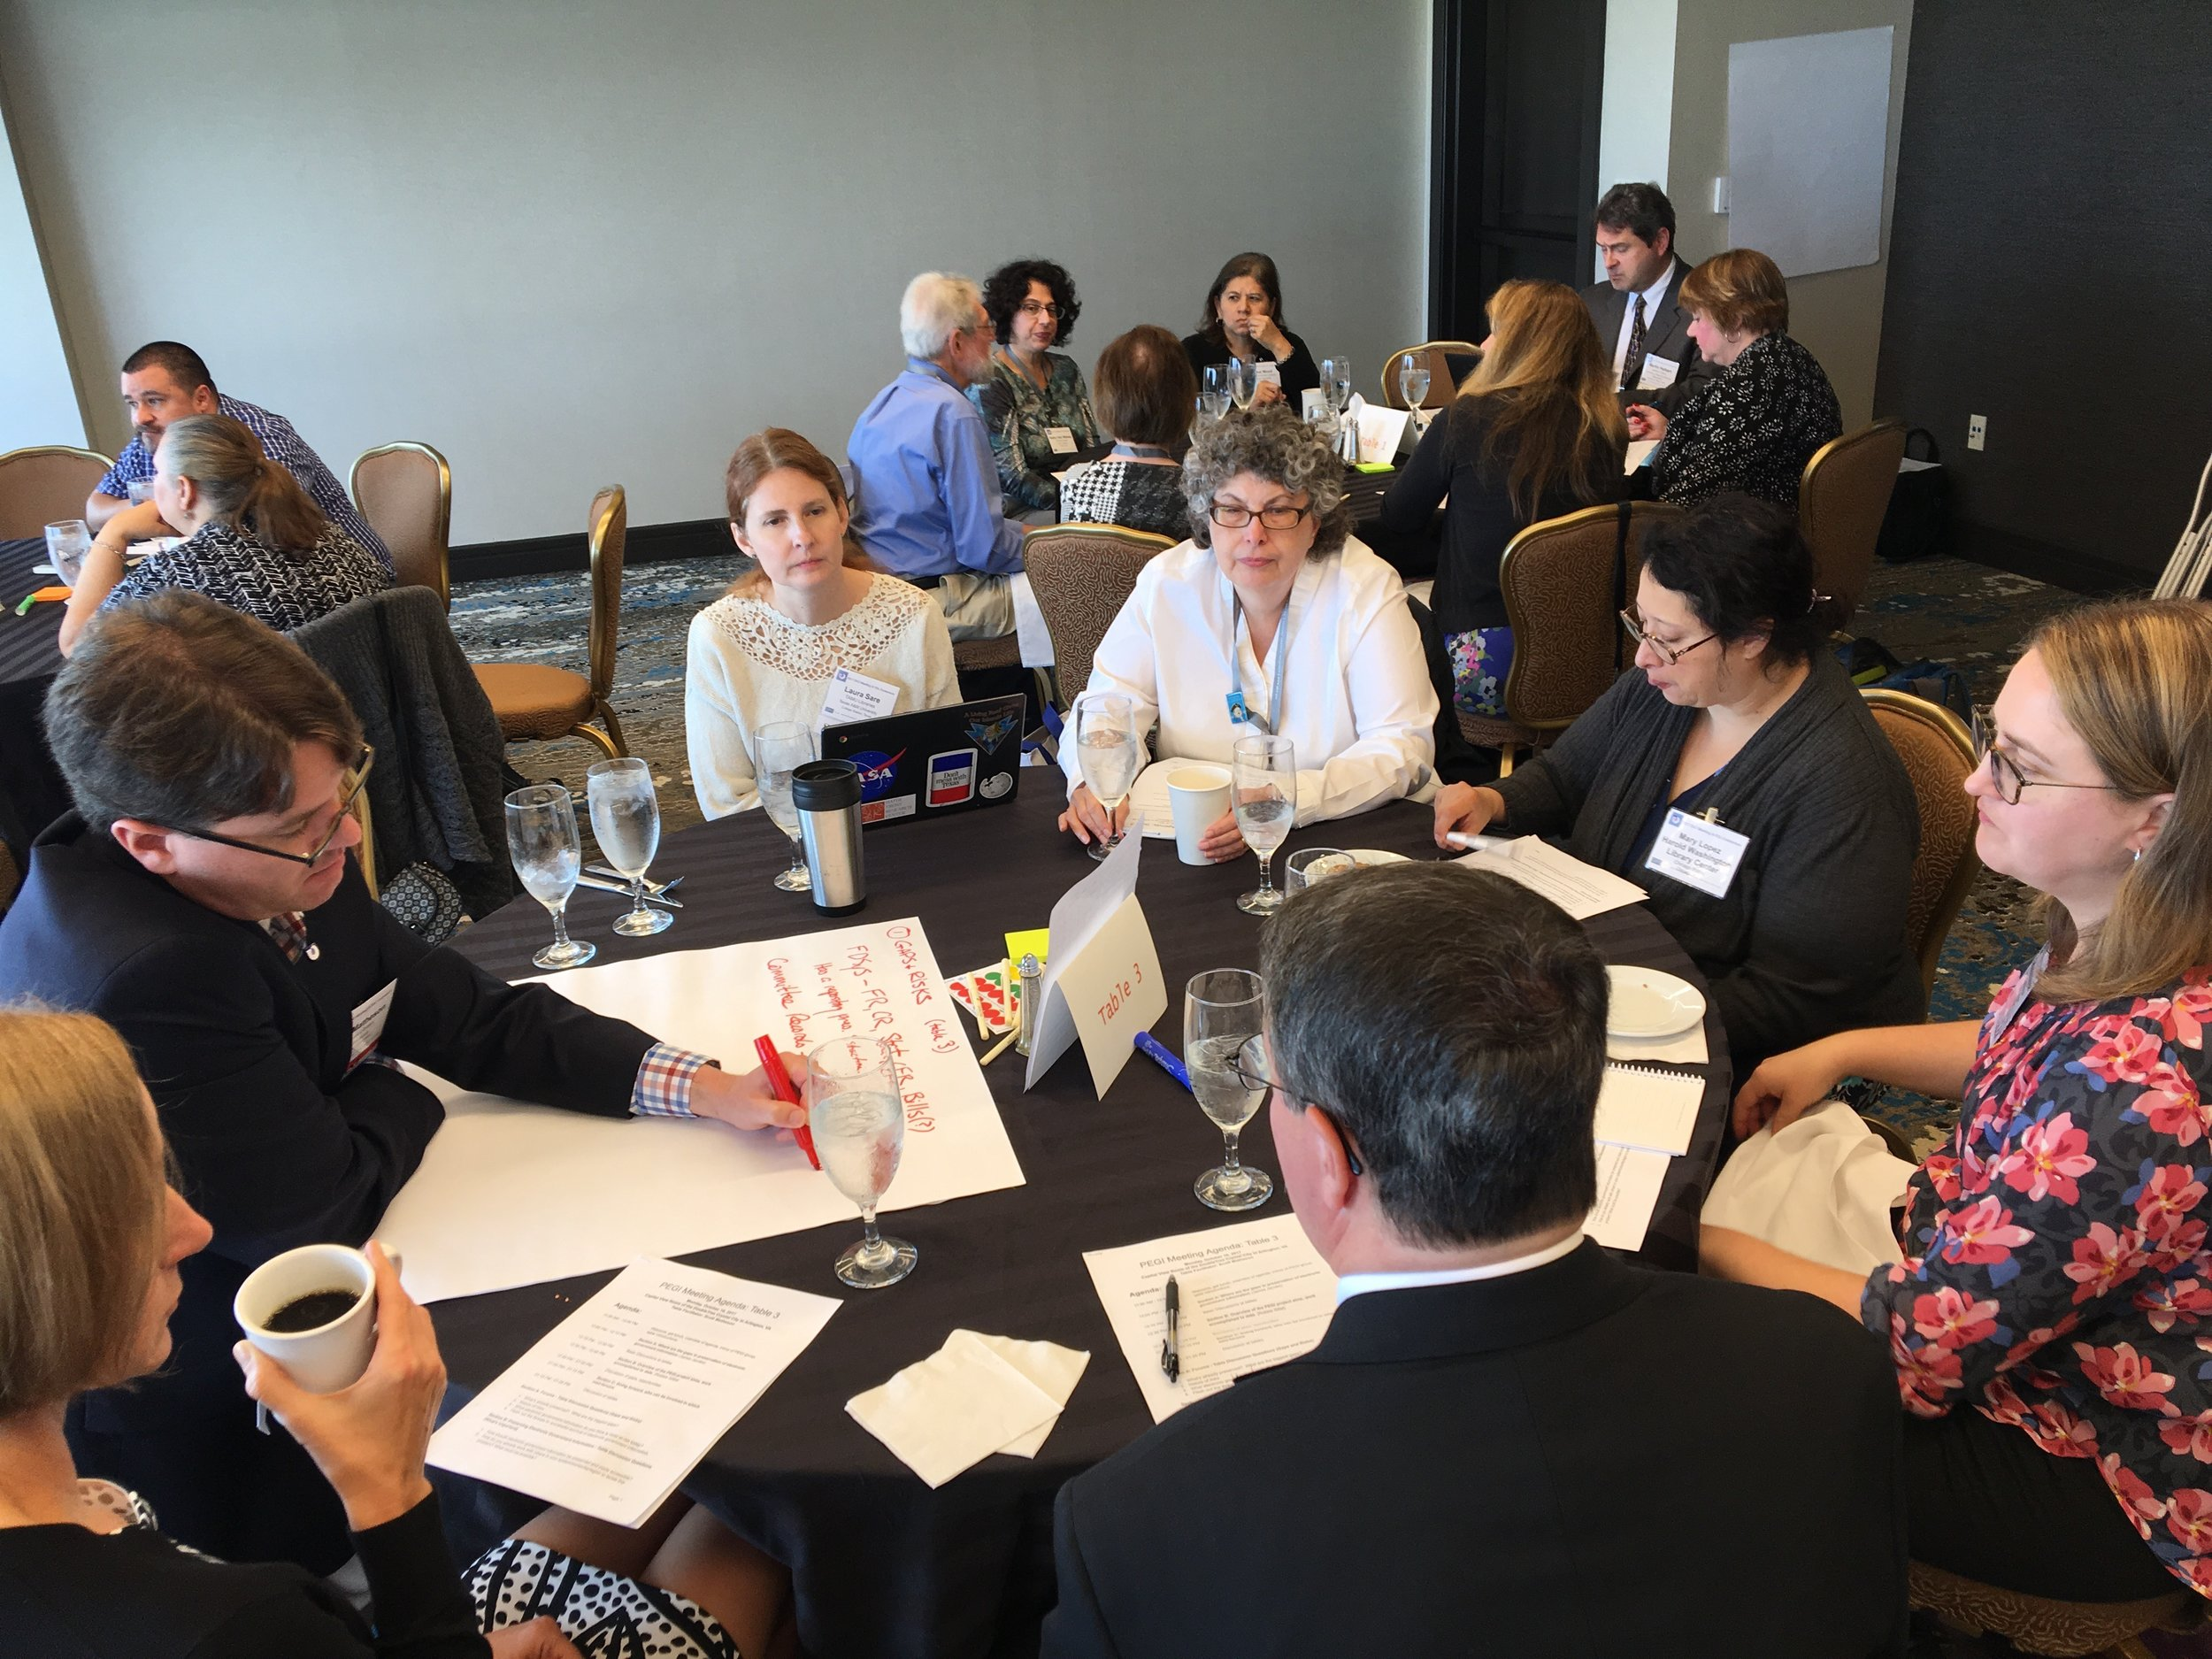 The group at table 3 identifying issues with preservation of electronic government information.